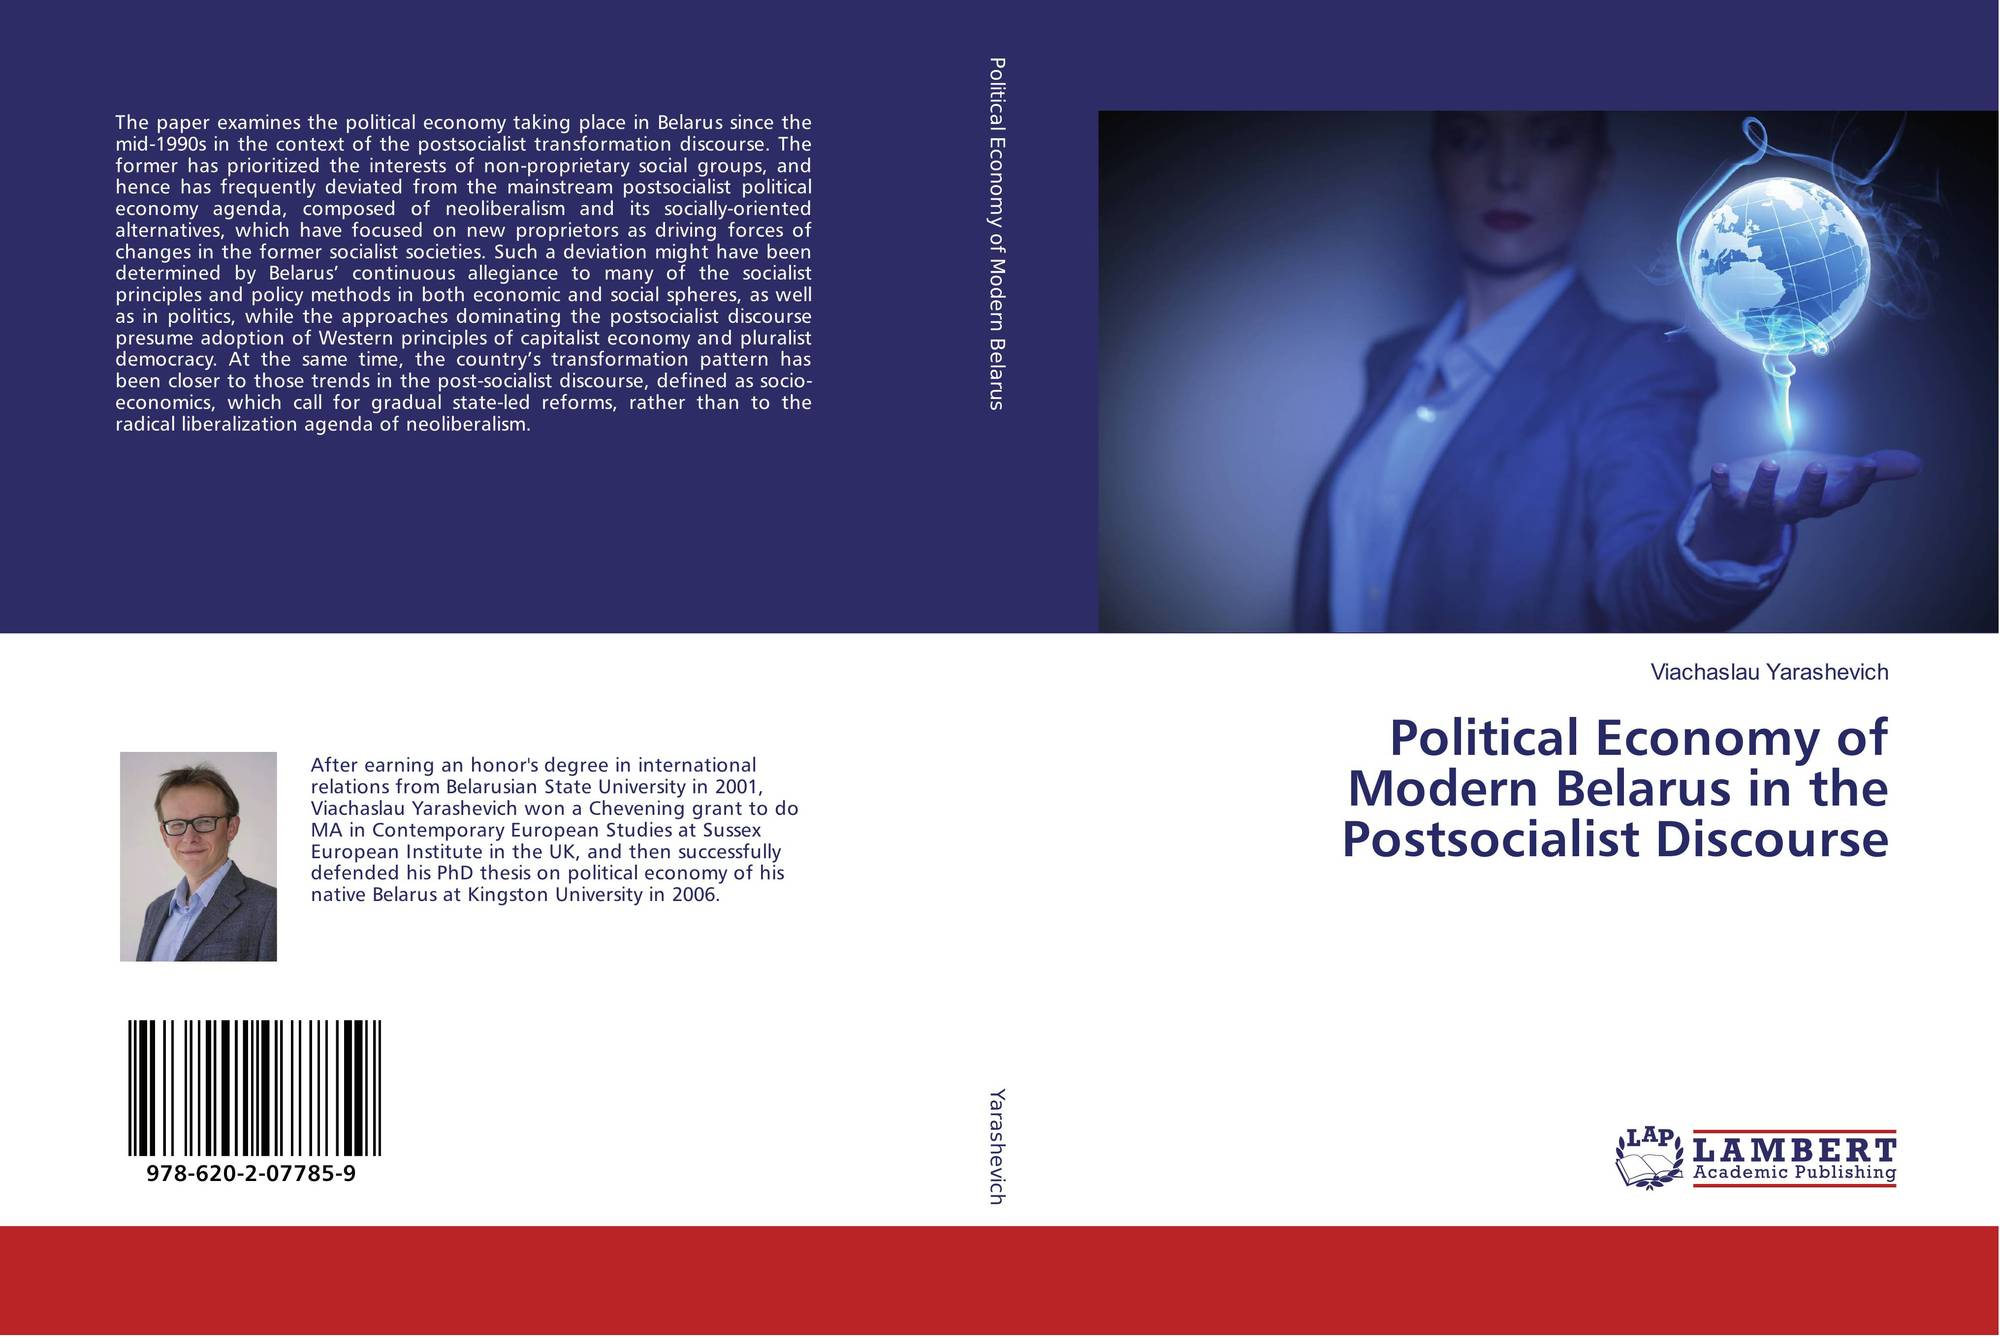 an analysis of political economy Political economy analysis can strengthen the diagnosis of development problems, assessment of risks, and the design of more effective support, leading to better development results.